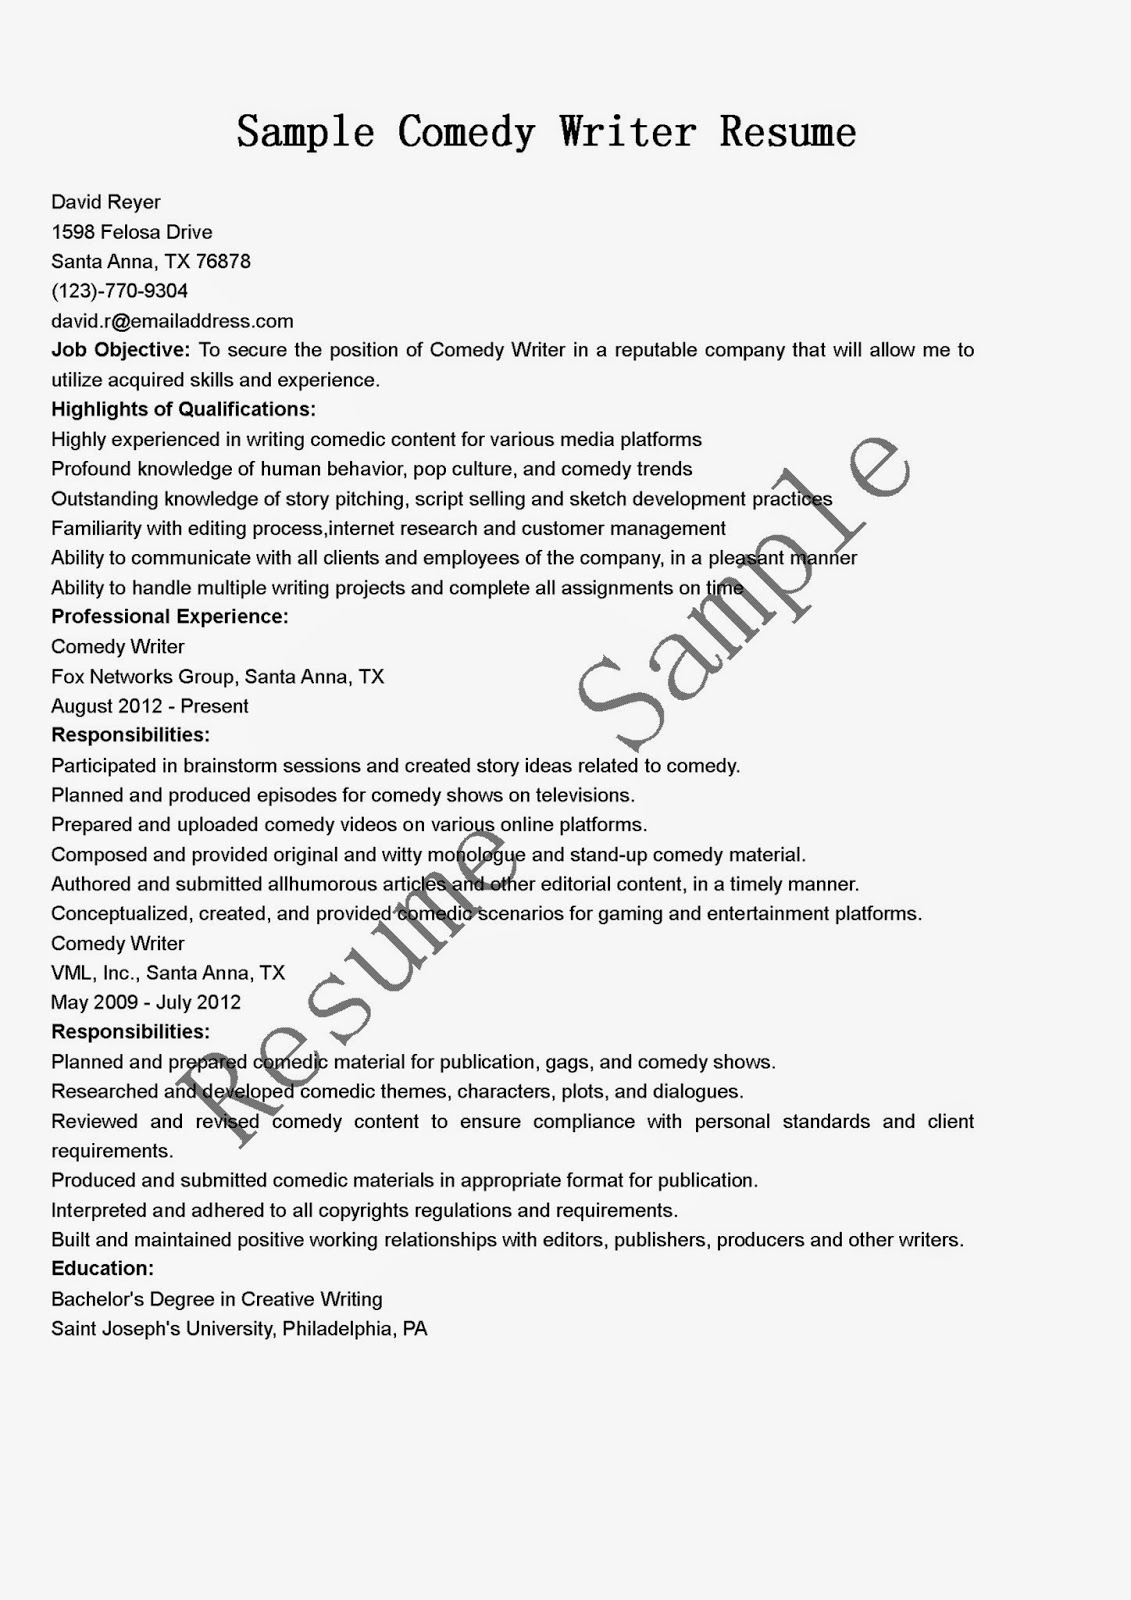 resume samples comedy writer resume sample